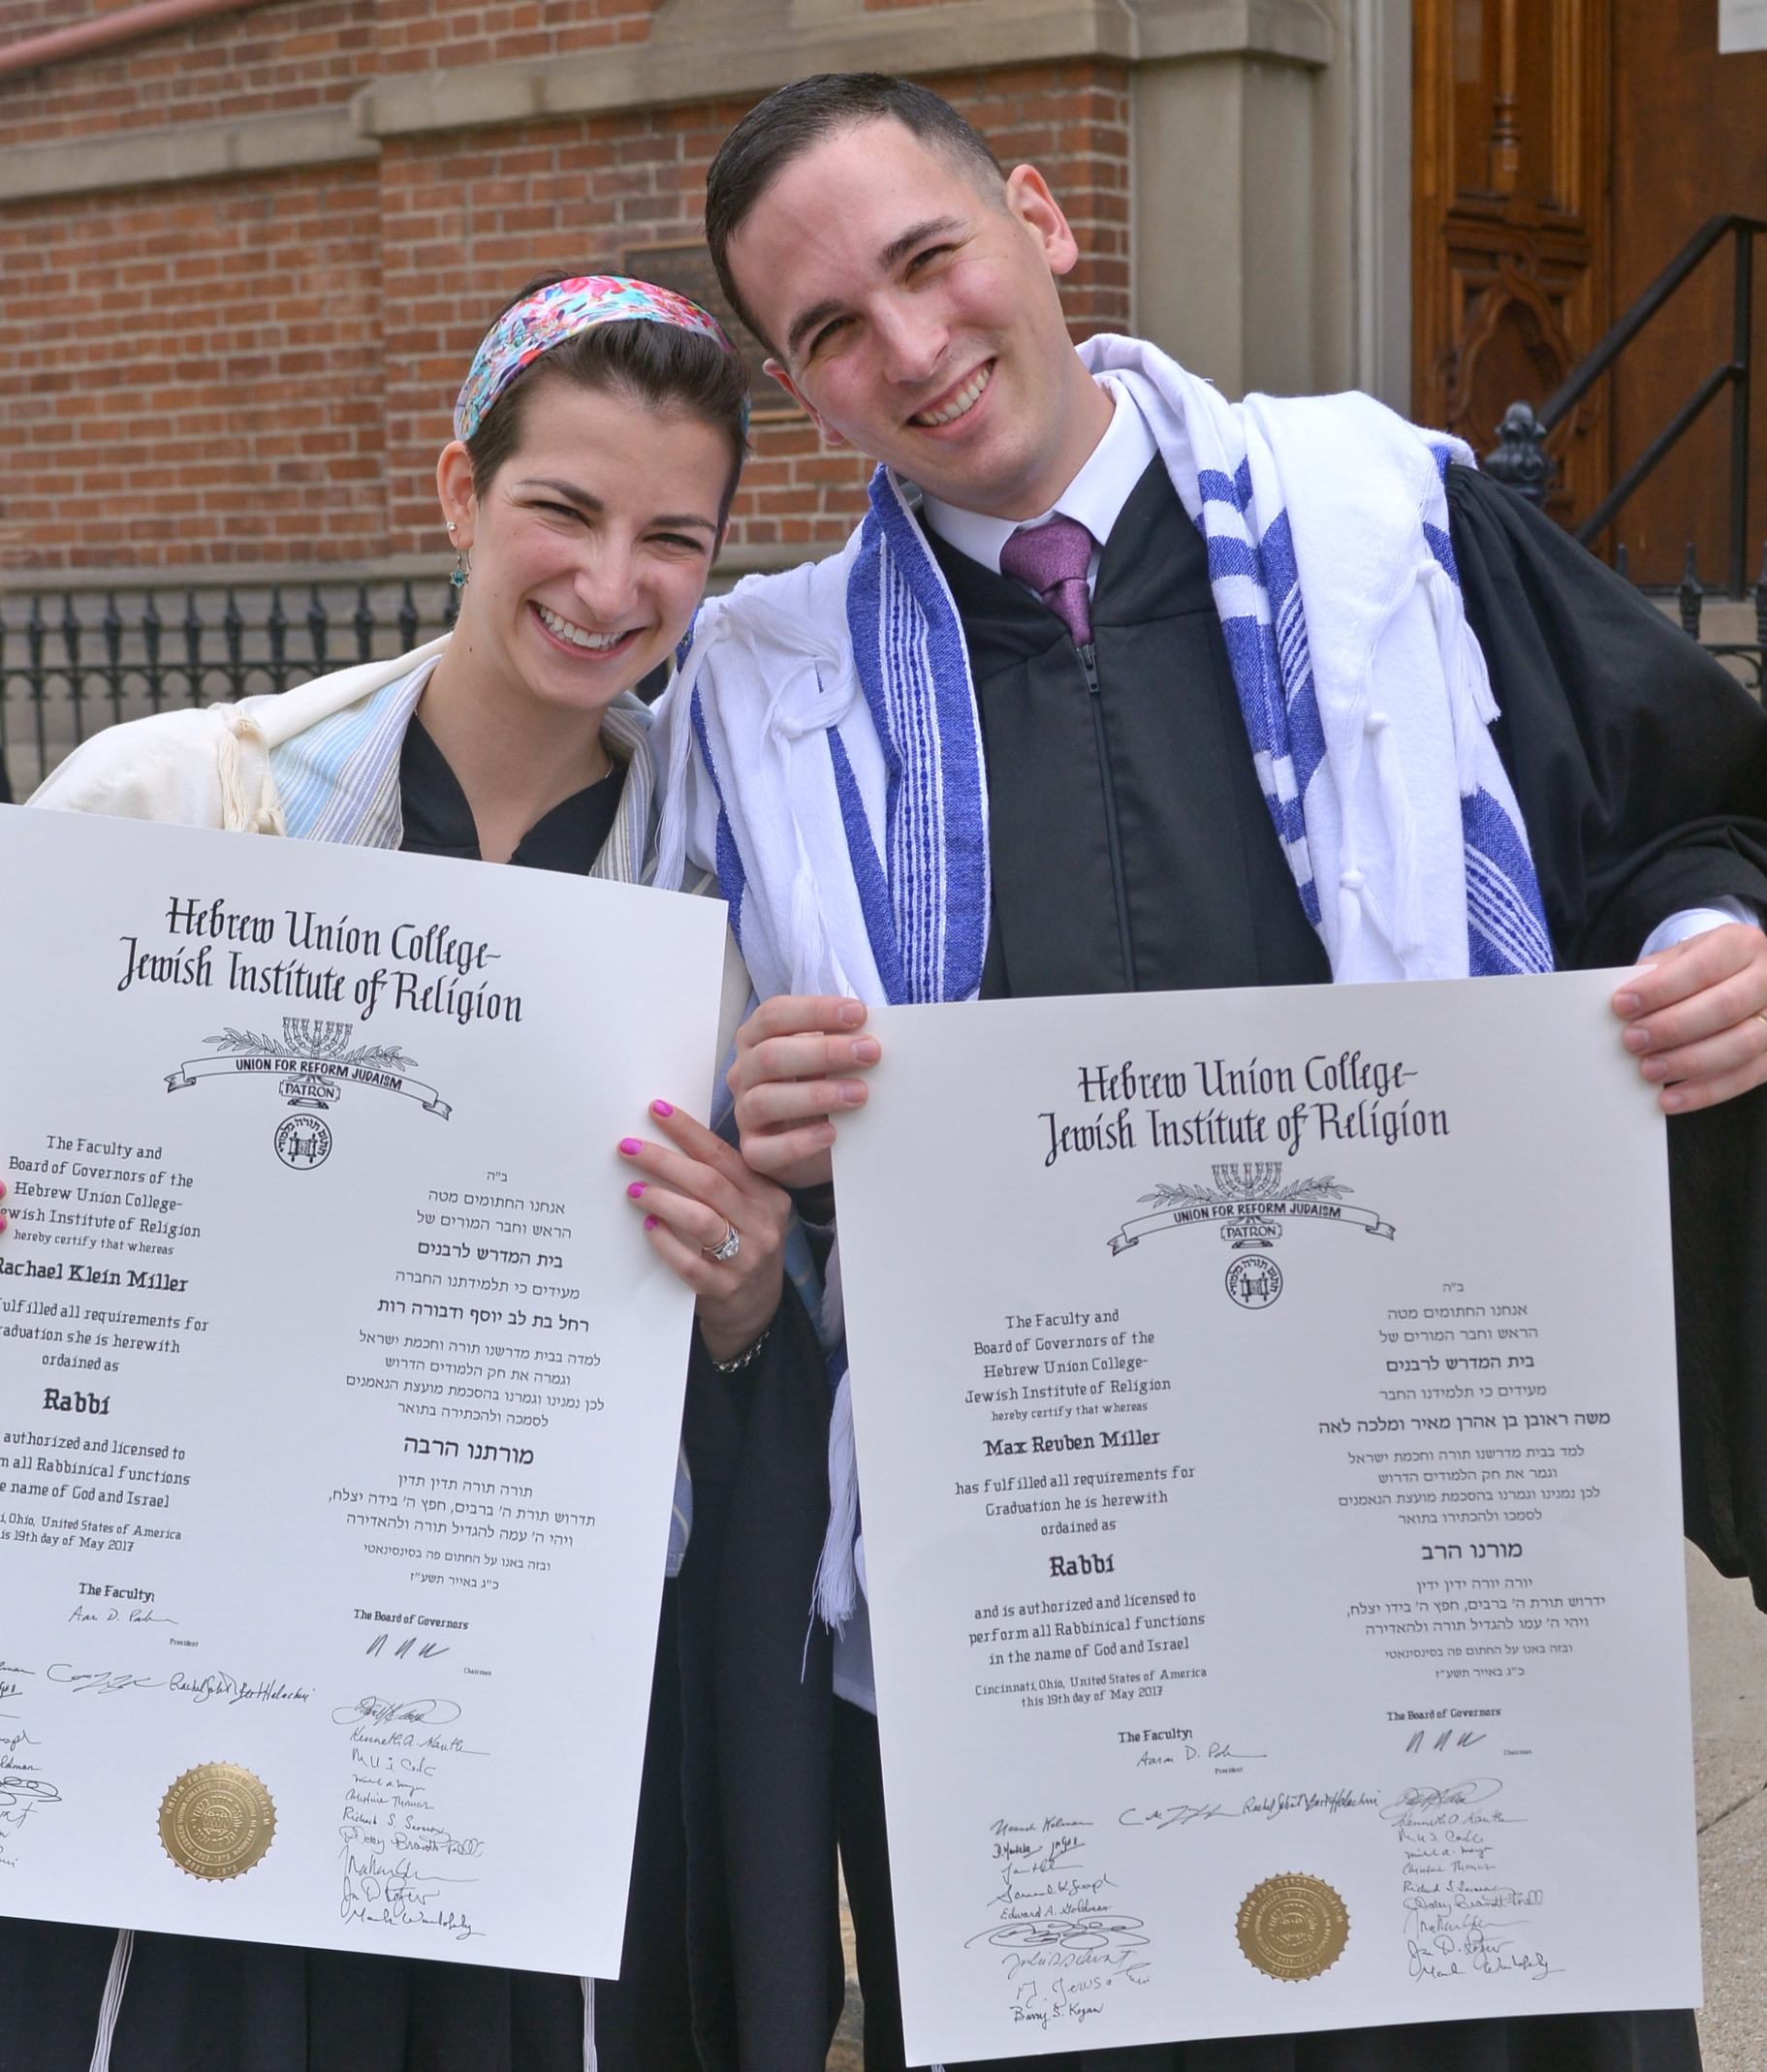 Background - Rabbi Rachael graduated from the American Jewish University with a degree in Jewish Studies before going directly to Israel to continue her education at the Hebrew Union College-Jewish Institute of Religion. She was ordained on the Cincinnati campus in 2017 with her husband, Rabbi Max Miller.